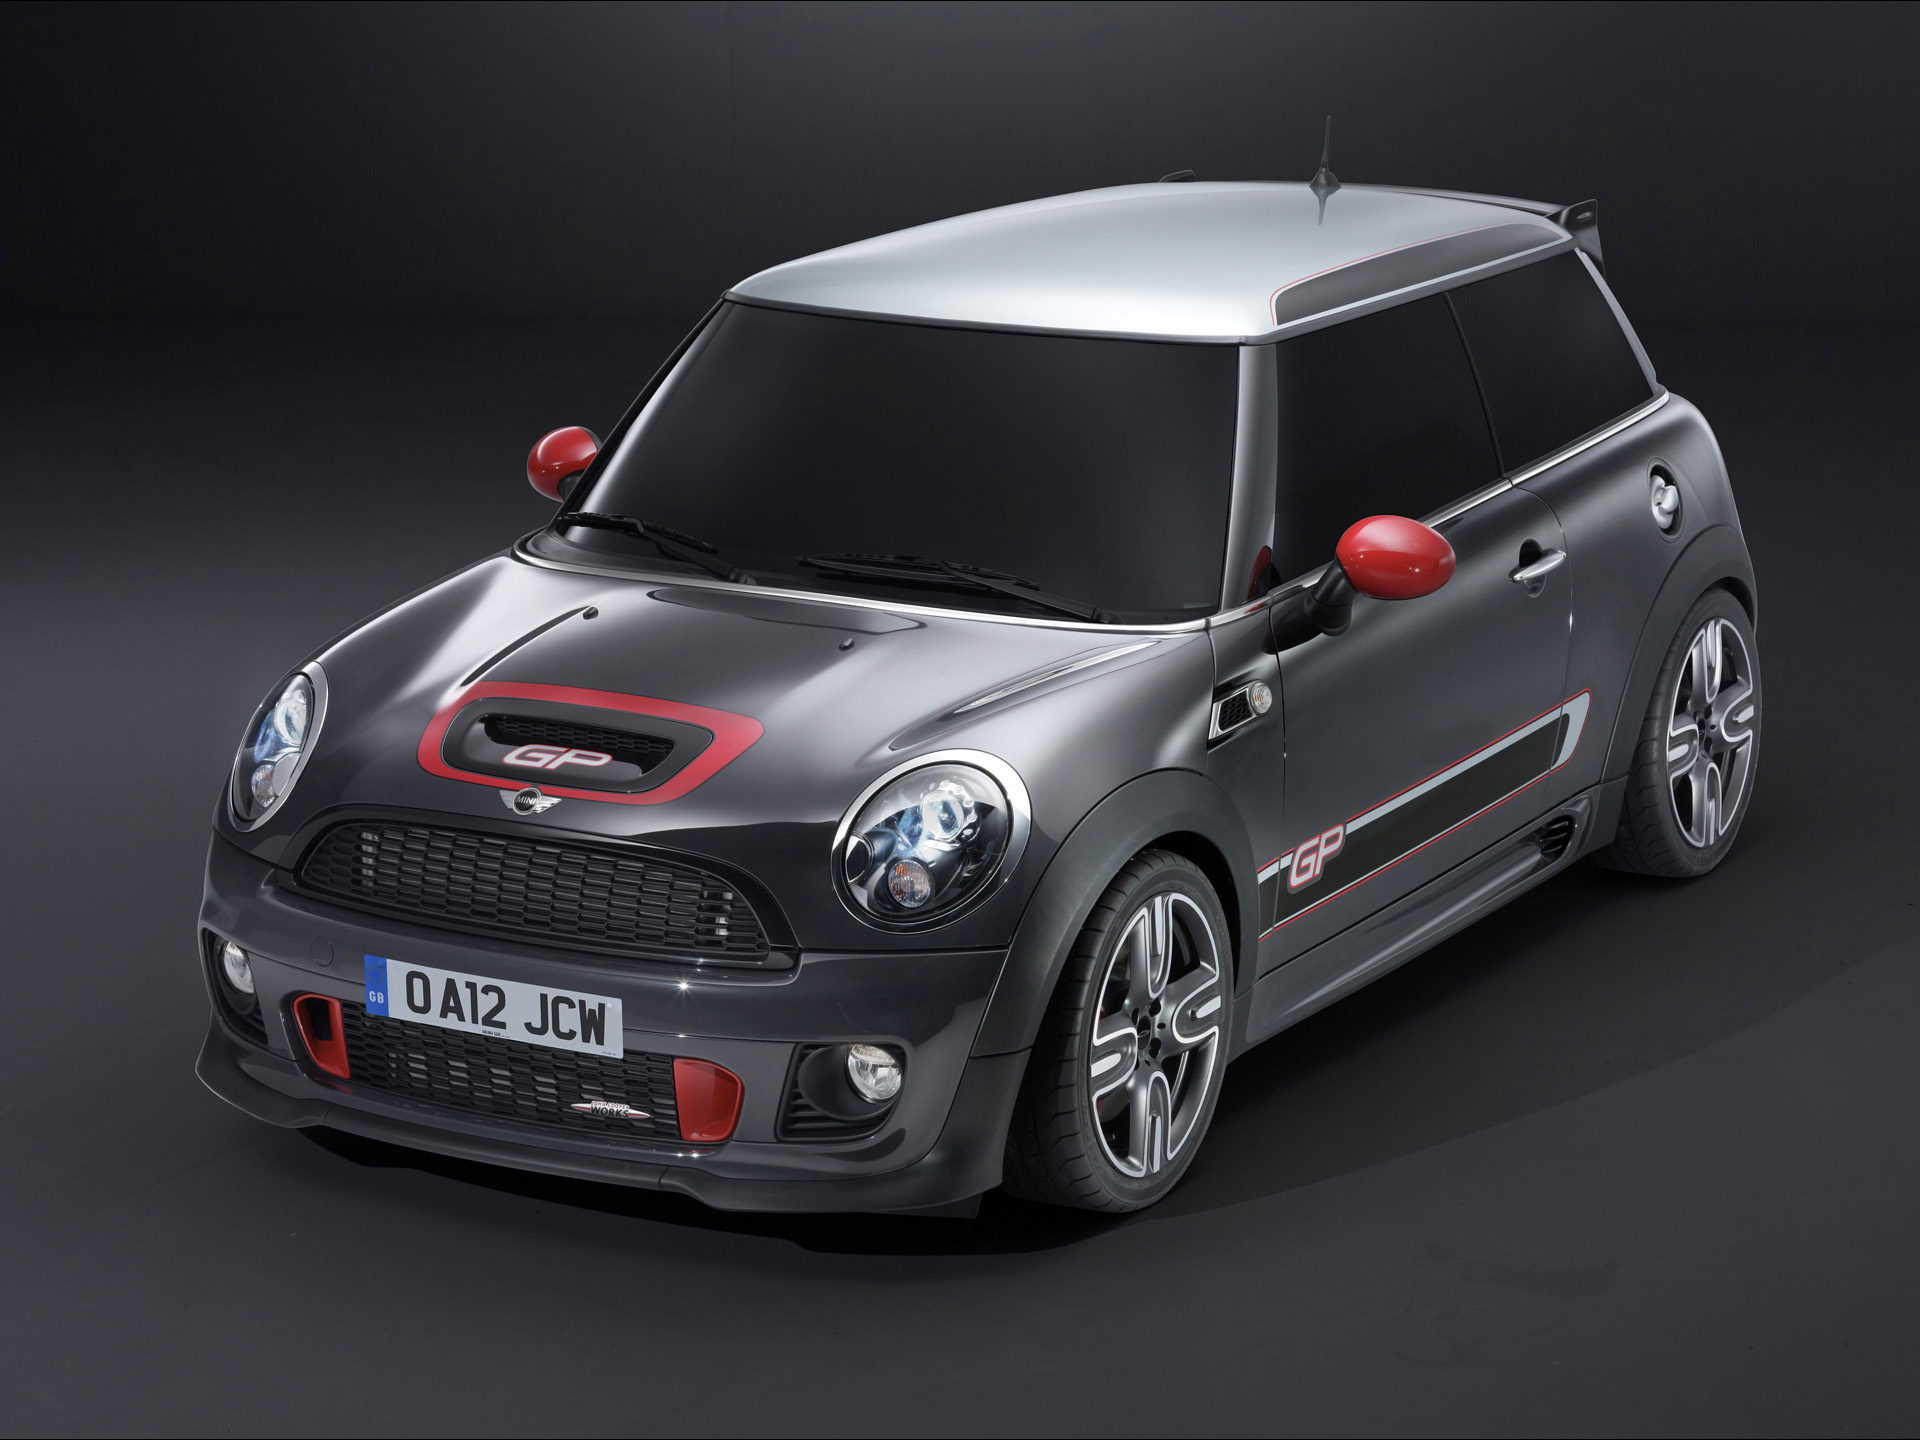 Mini John Cooper Works 1.6 2012 photo - 5